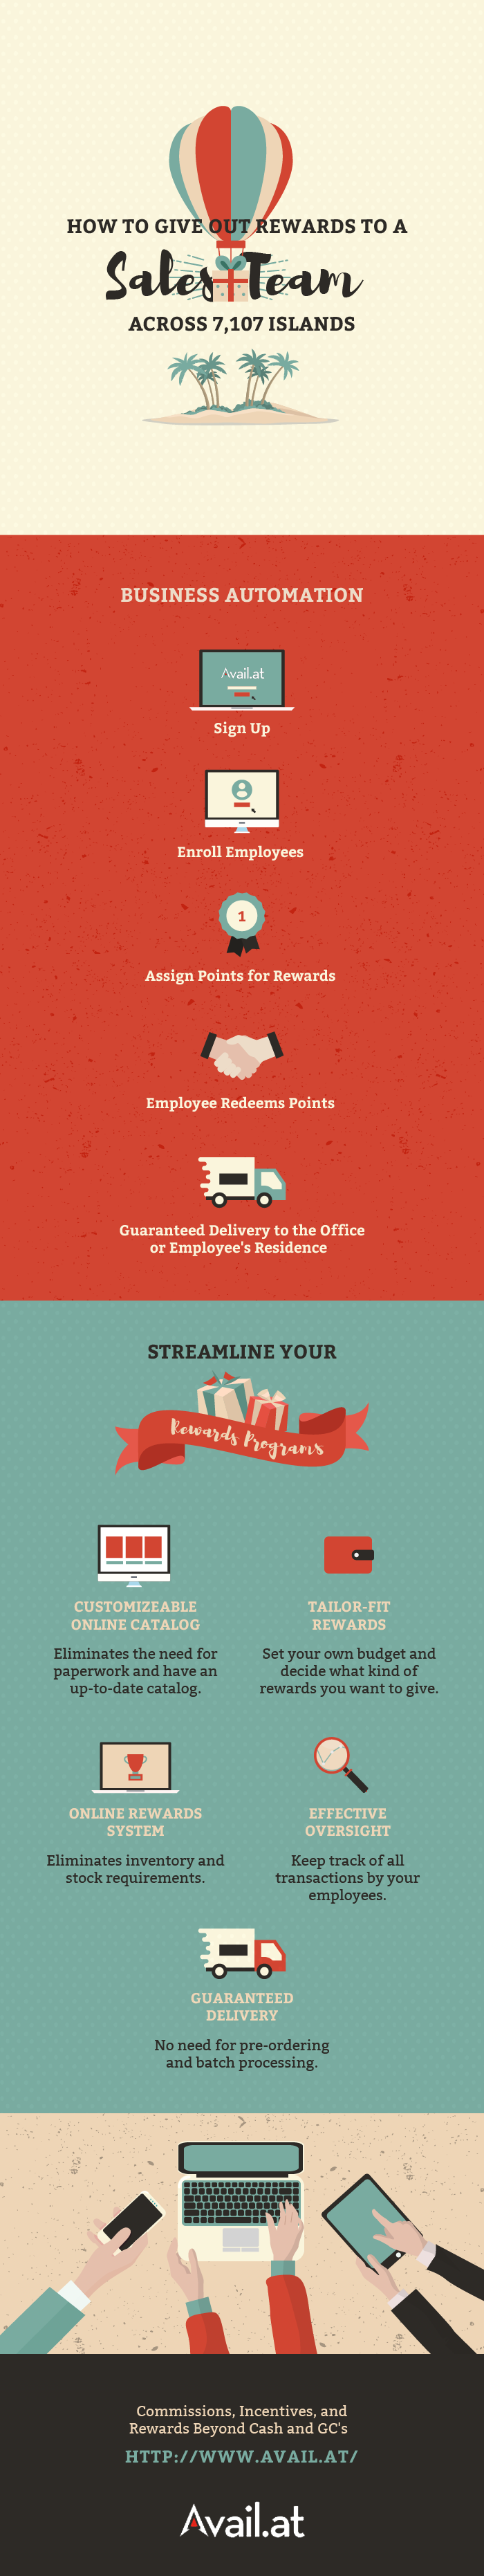 How to Give out Rewards to a Sales Team Across 7,107 Islands